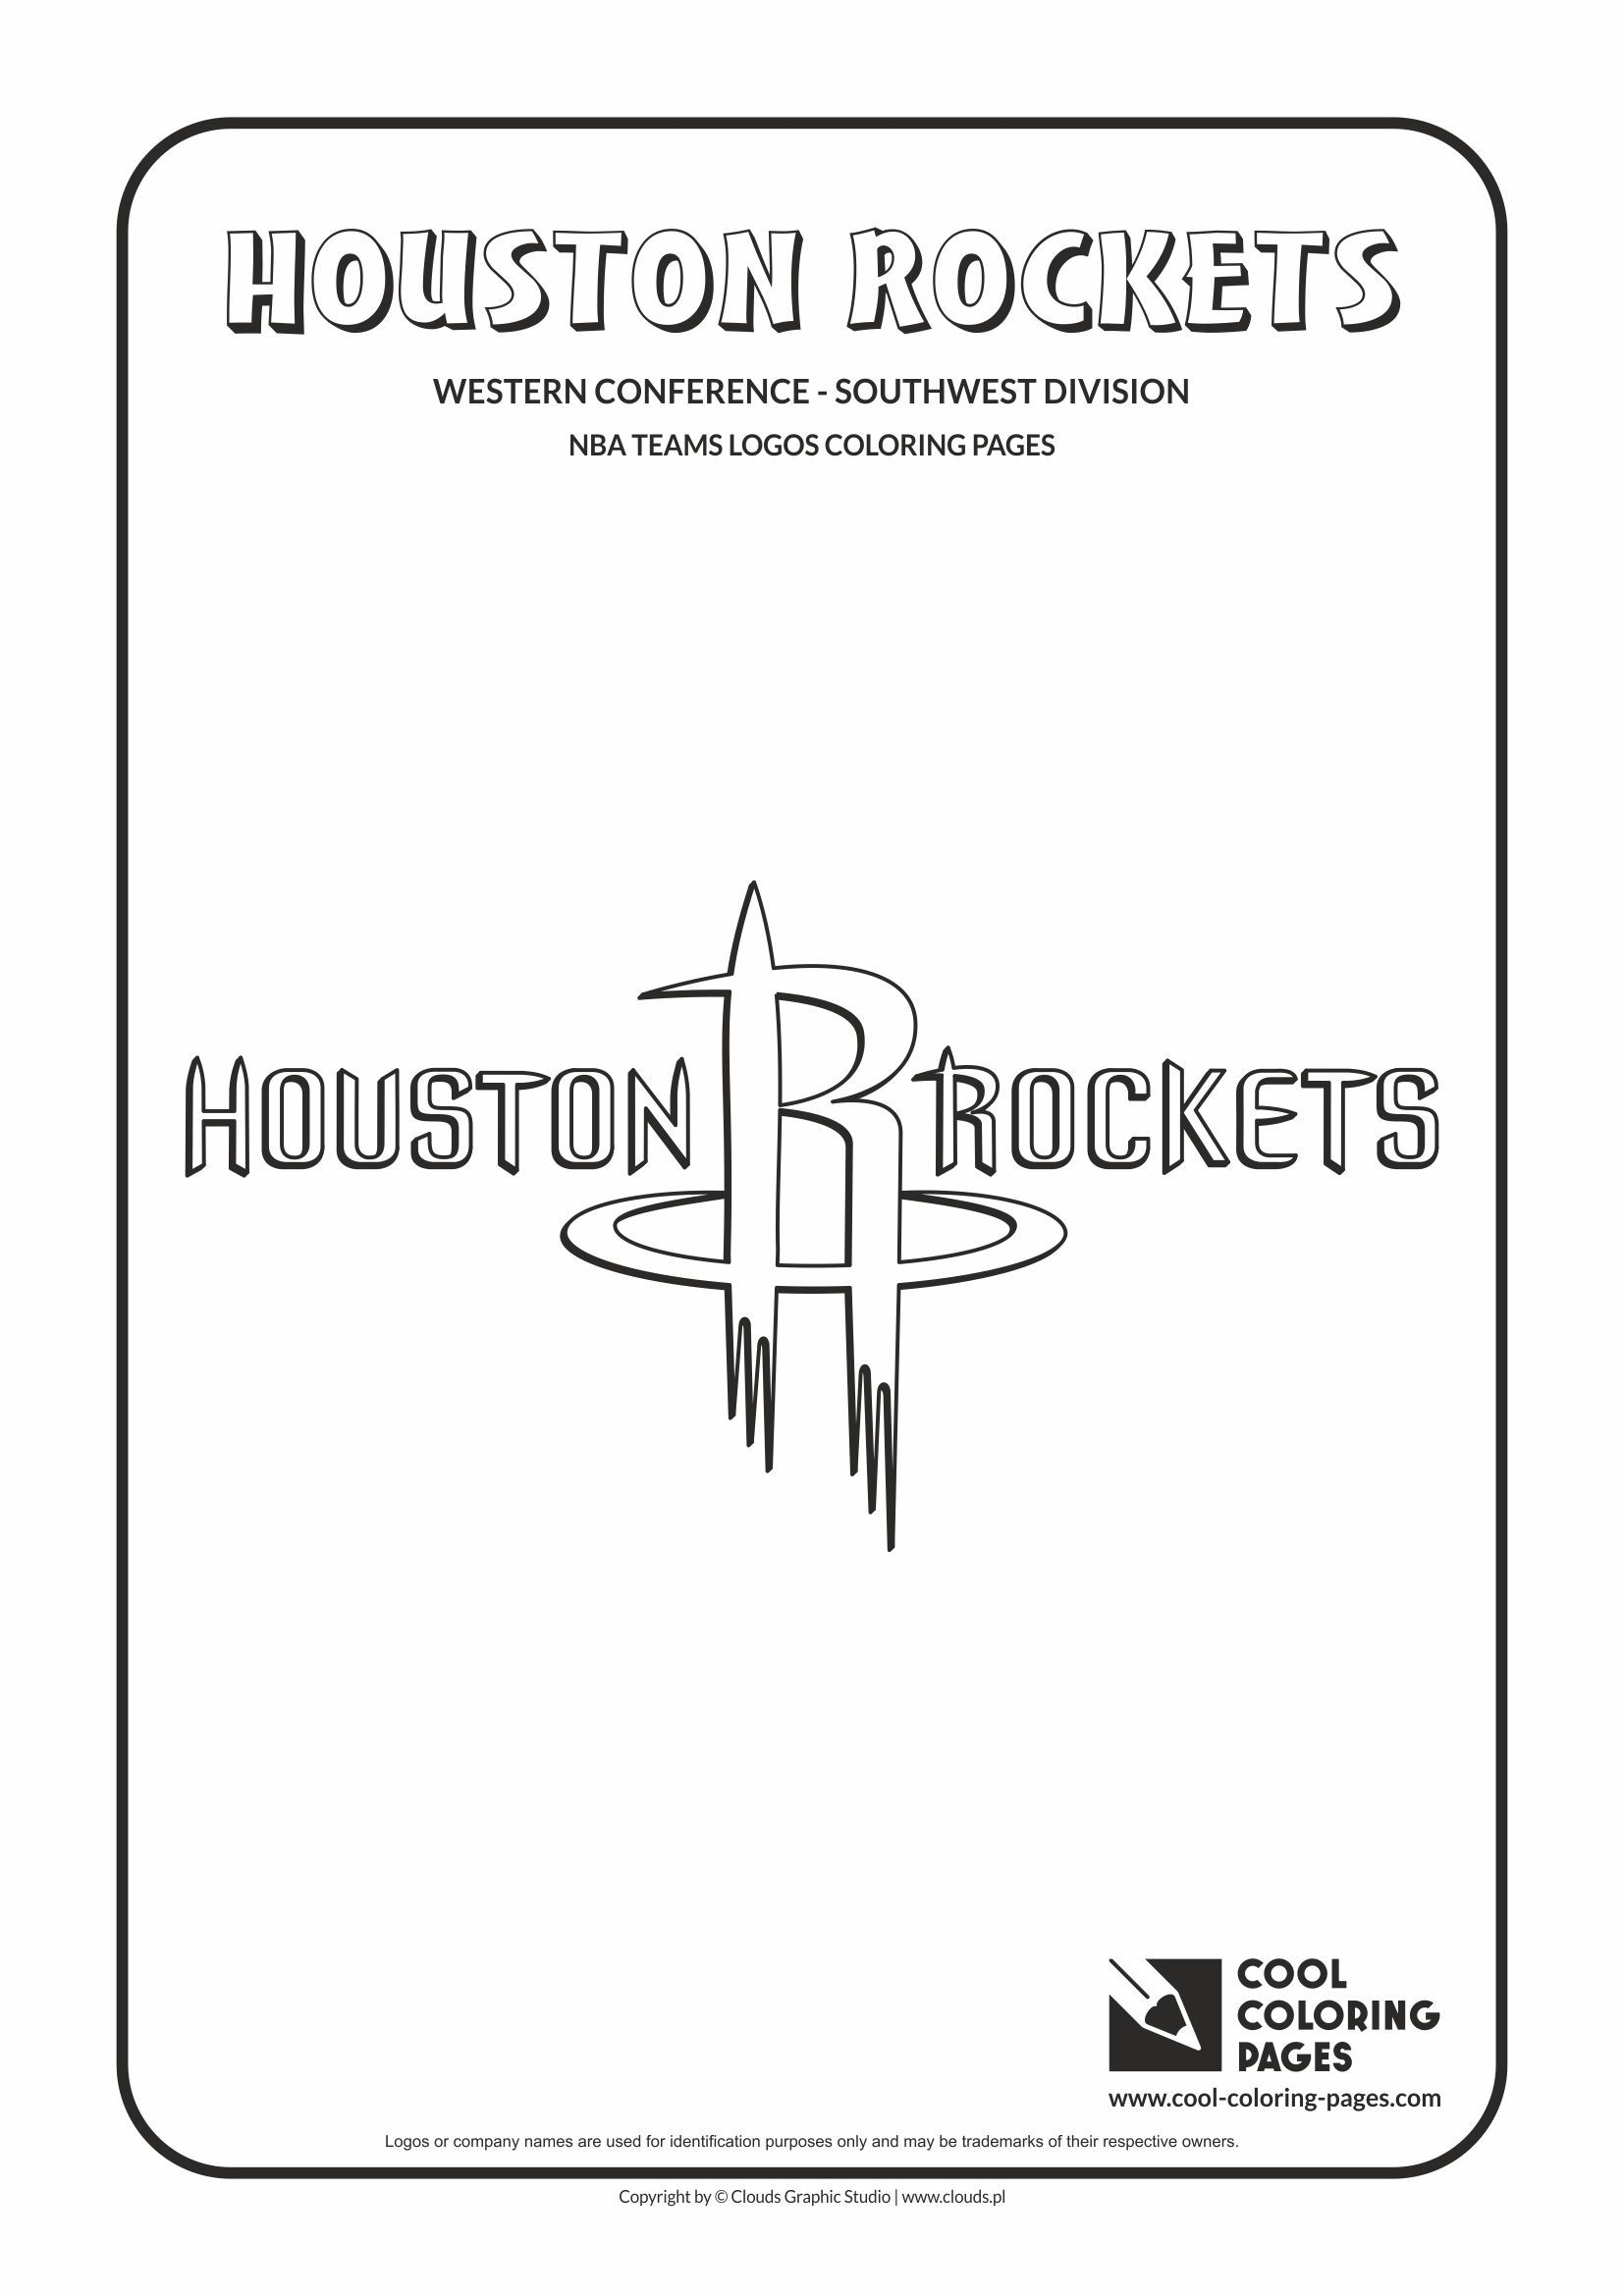 cool coloring pages nba basketball clubs logos western